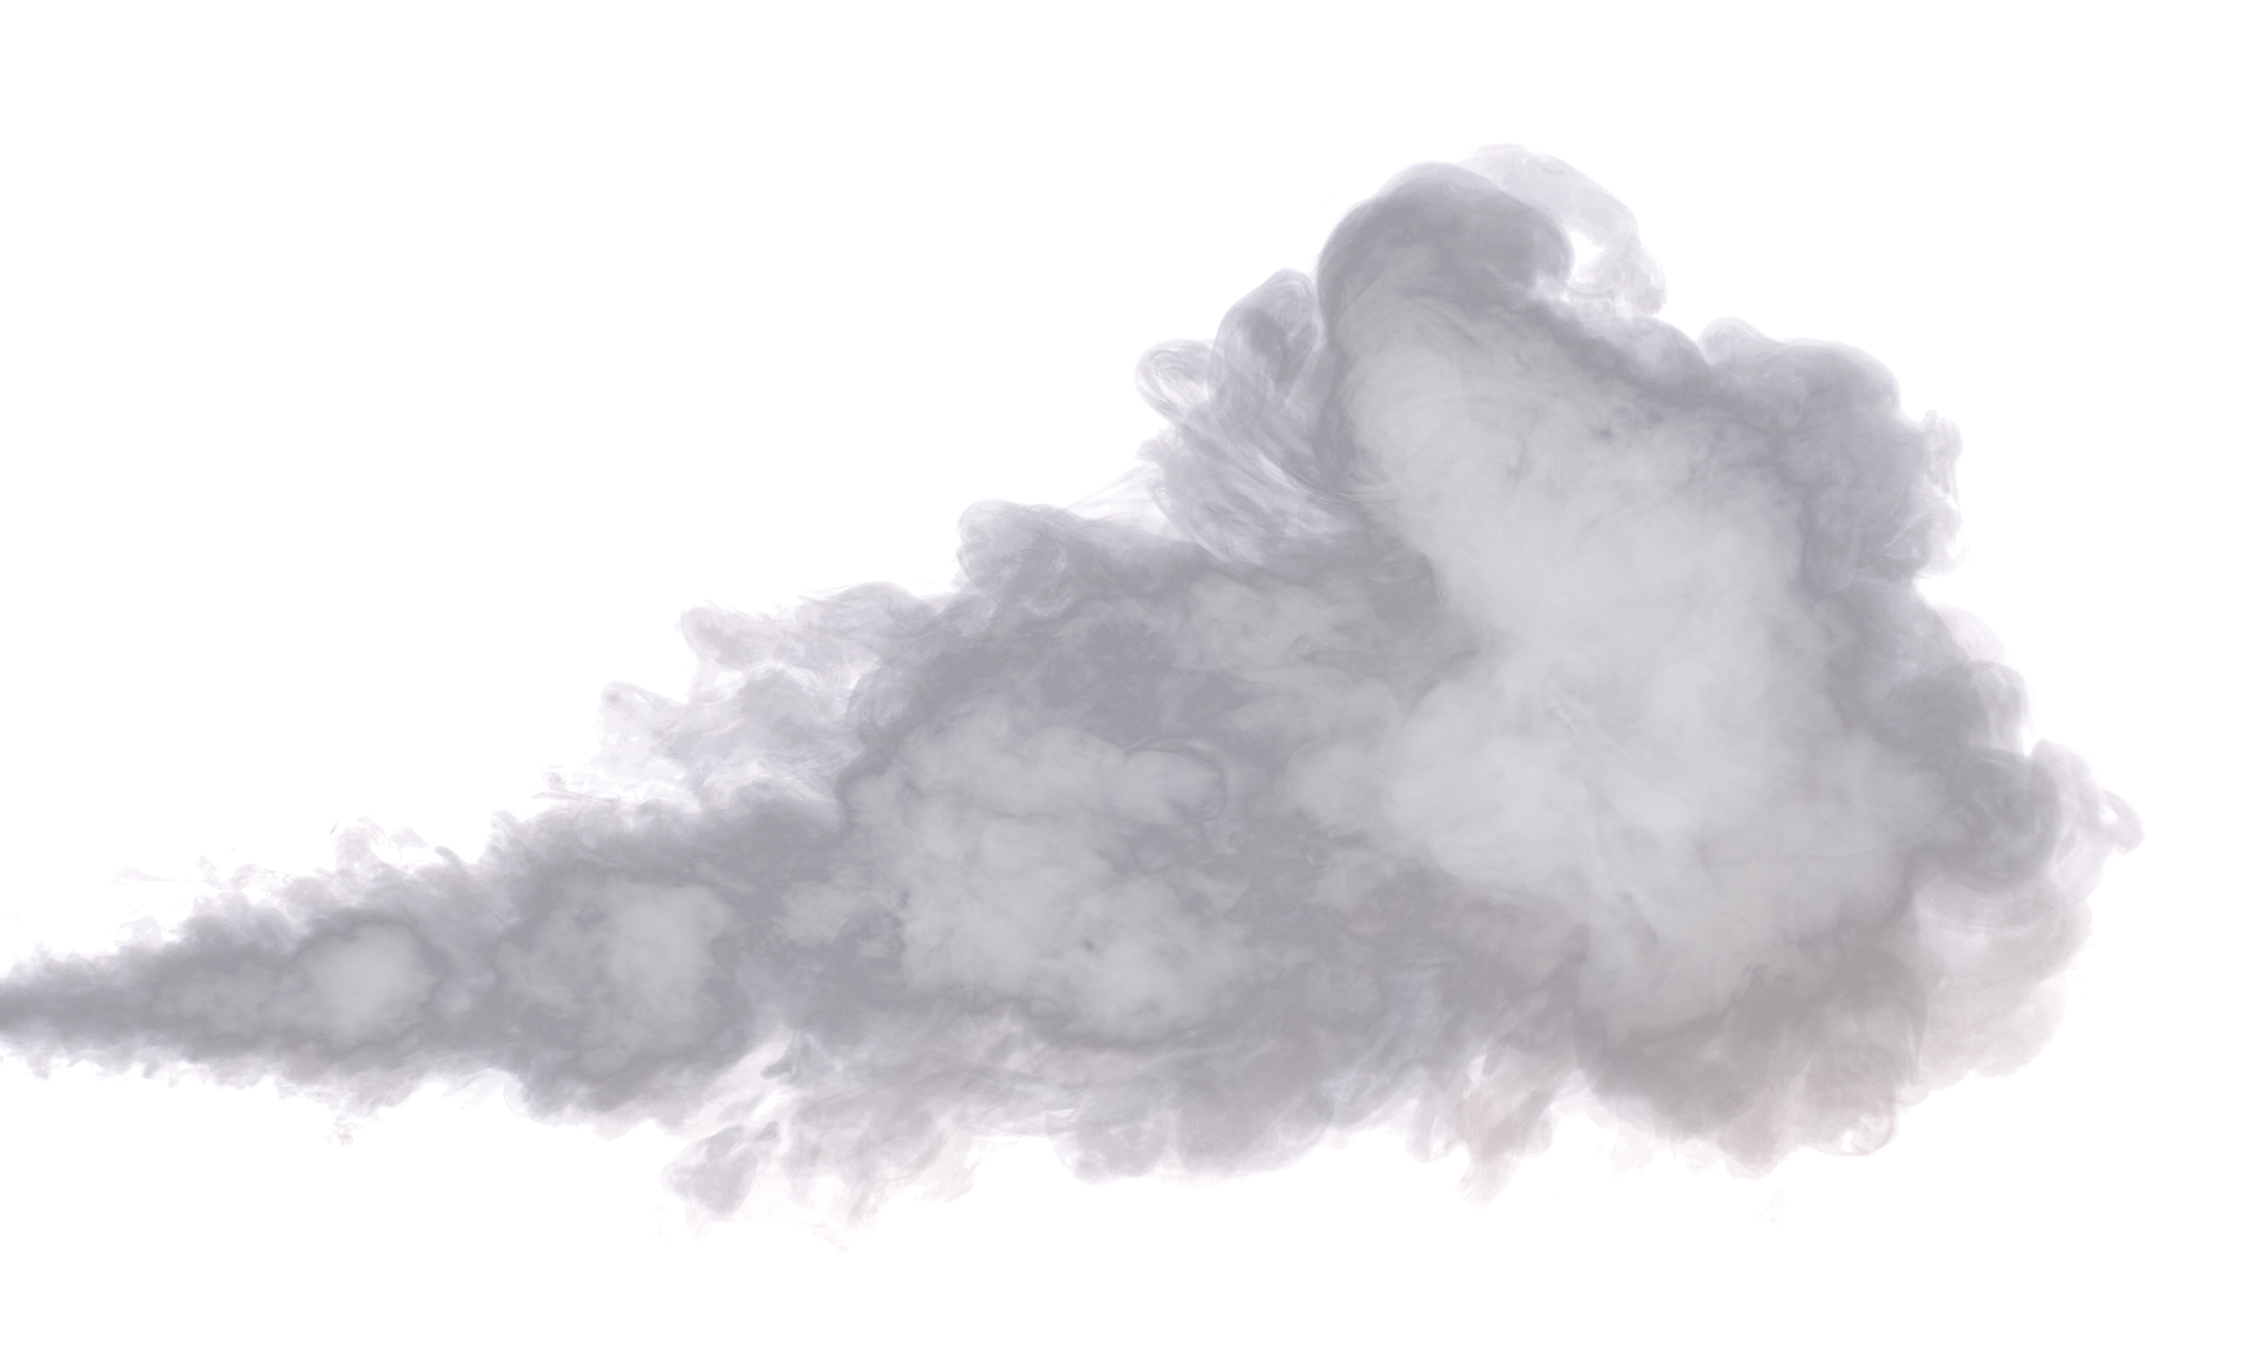 Smoke Png Smoking Transparent Background 13.